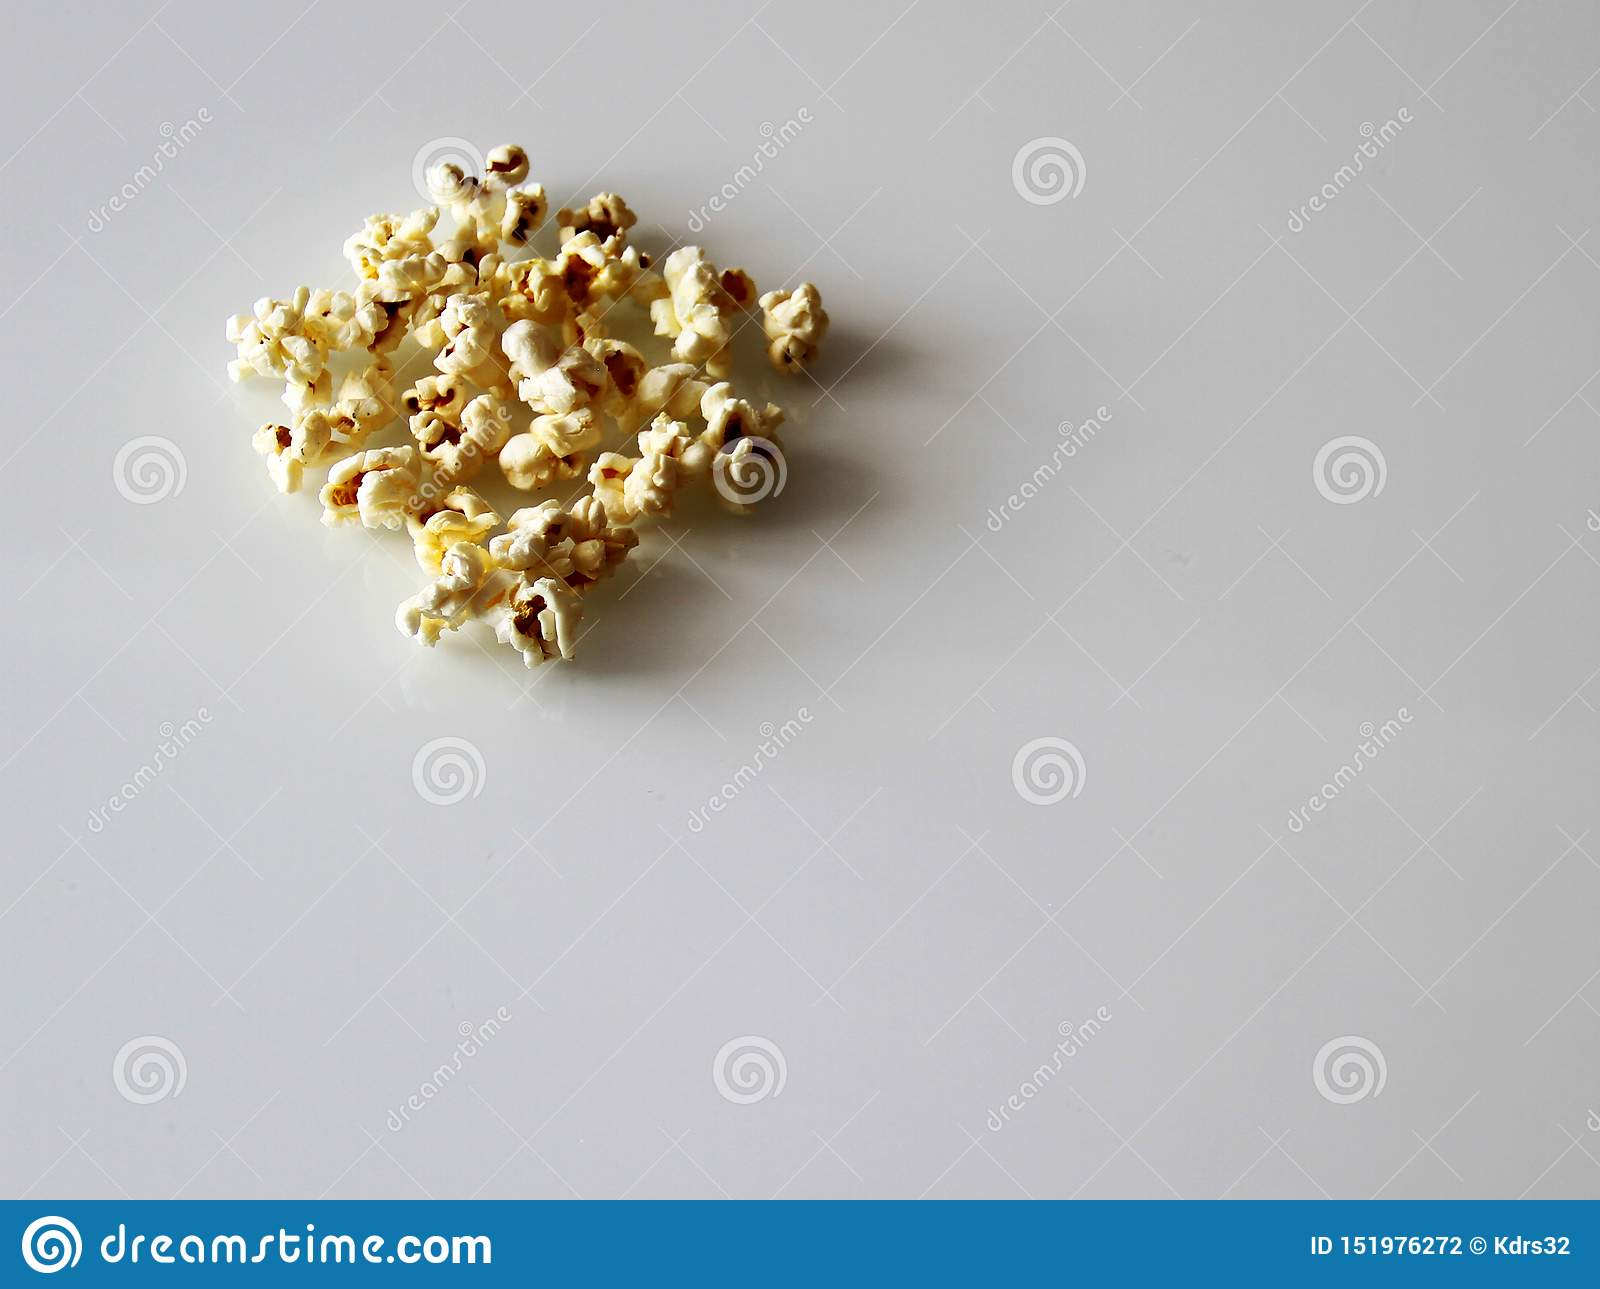 Popcorn laid out on a white glass table